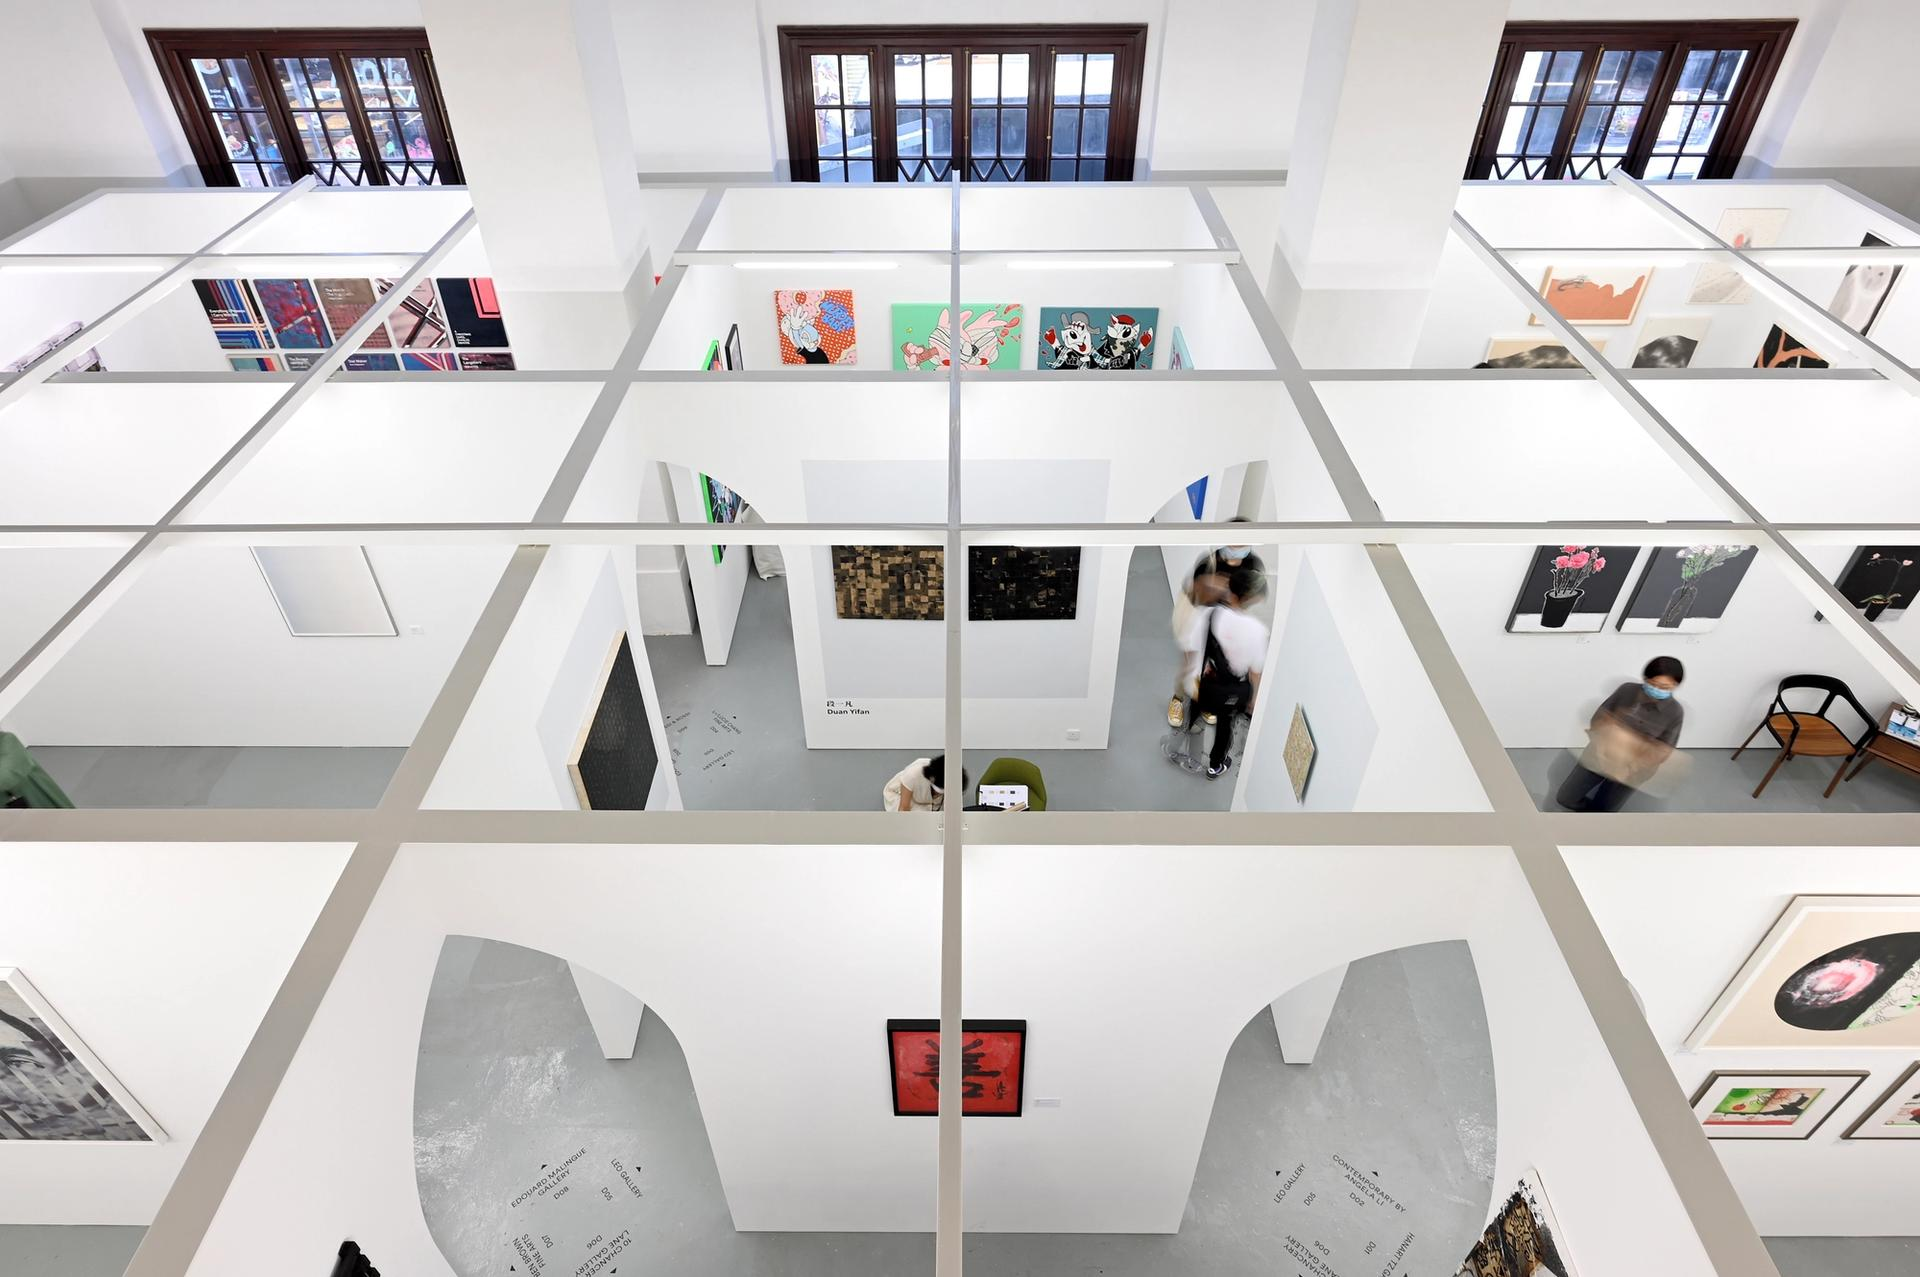 The Unscheduled fair, organised by the Hong Kong Art Gallery Association, has 12 exhibitors Photo © HKAGA (Felix SC Wong)